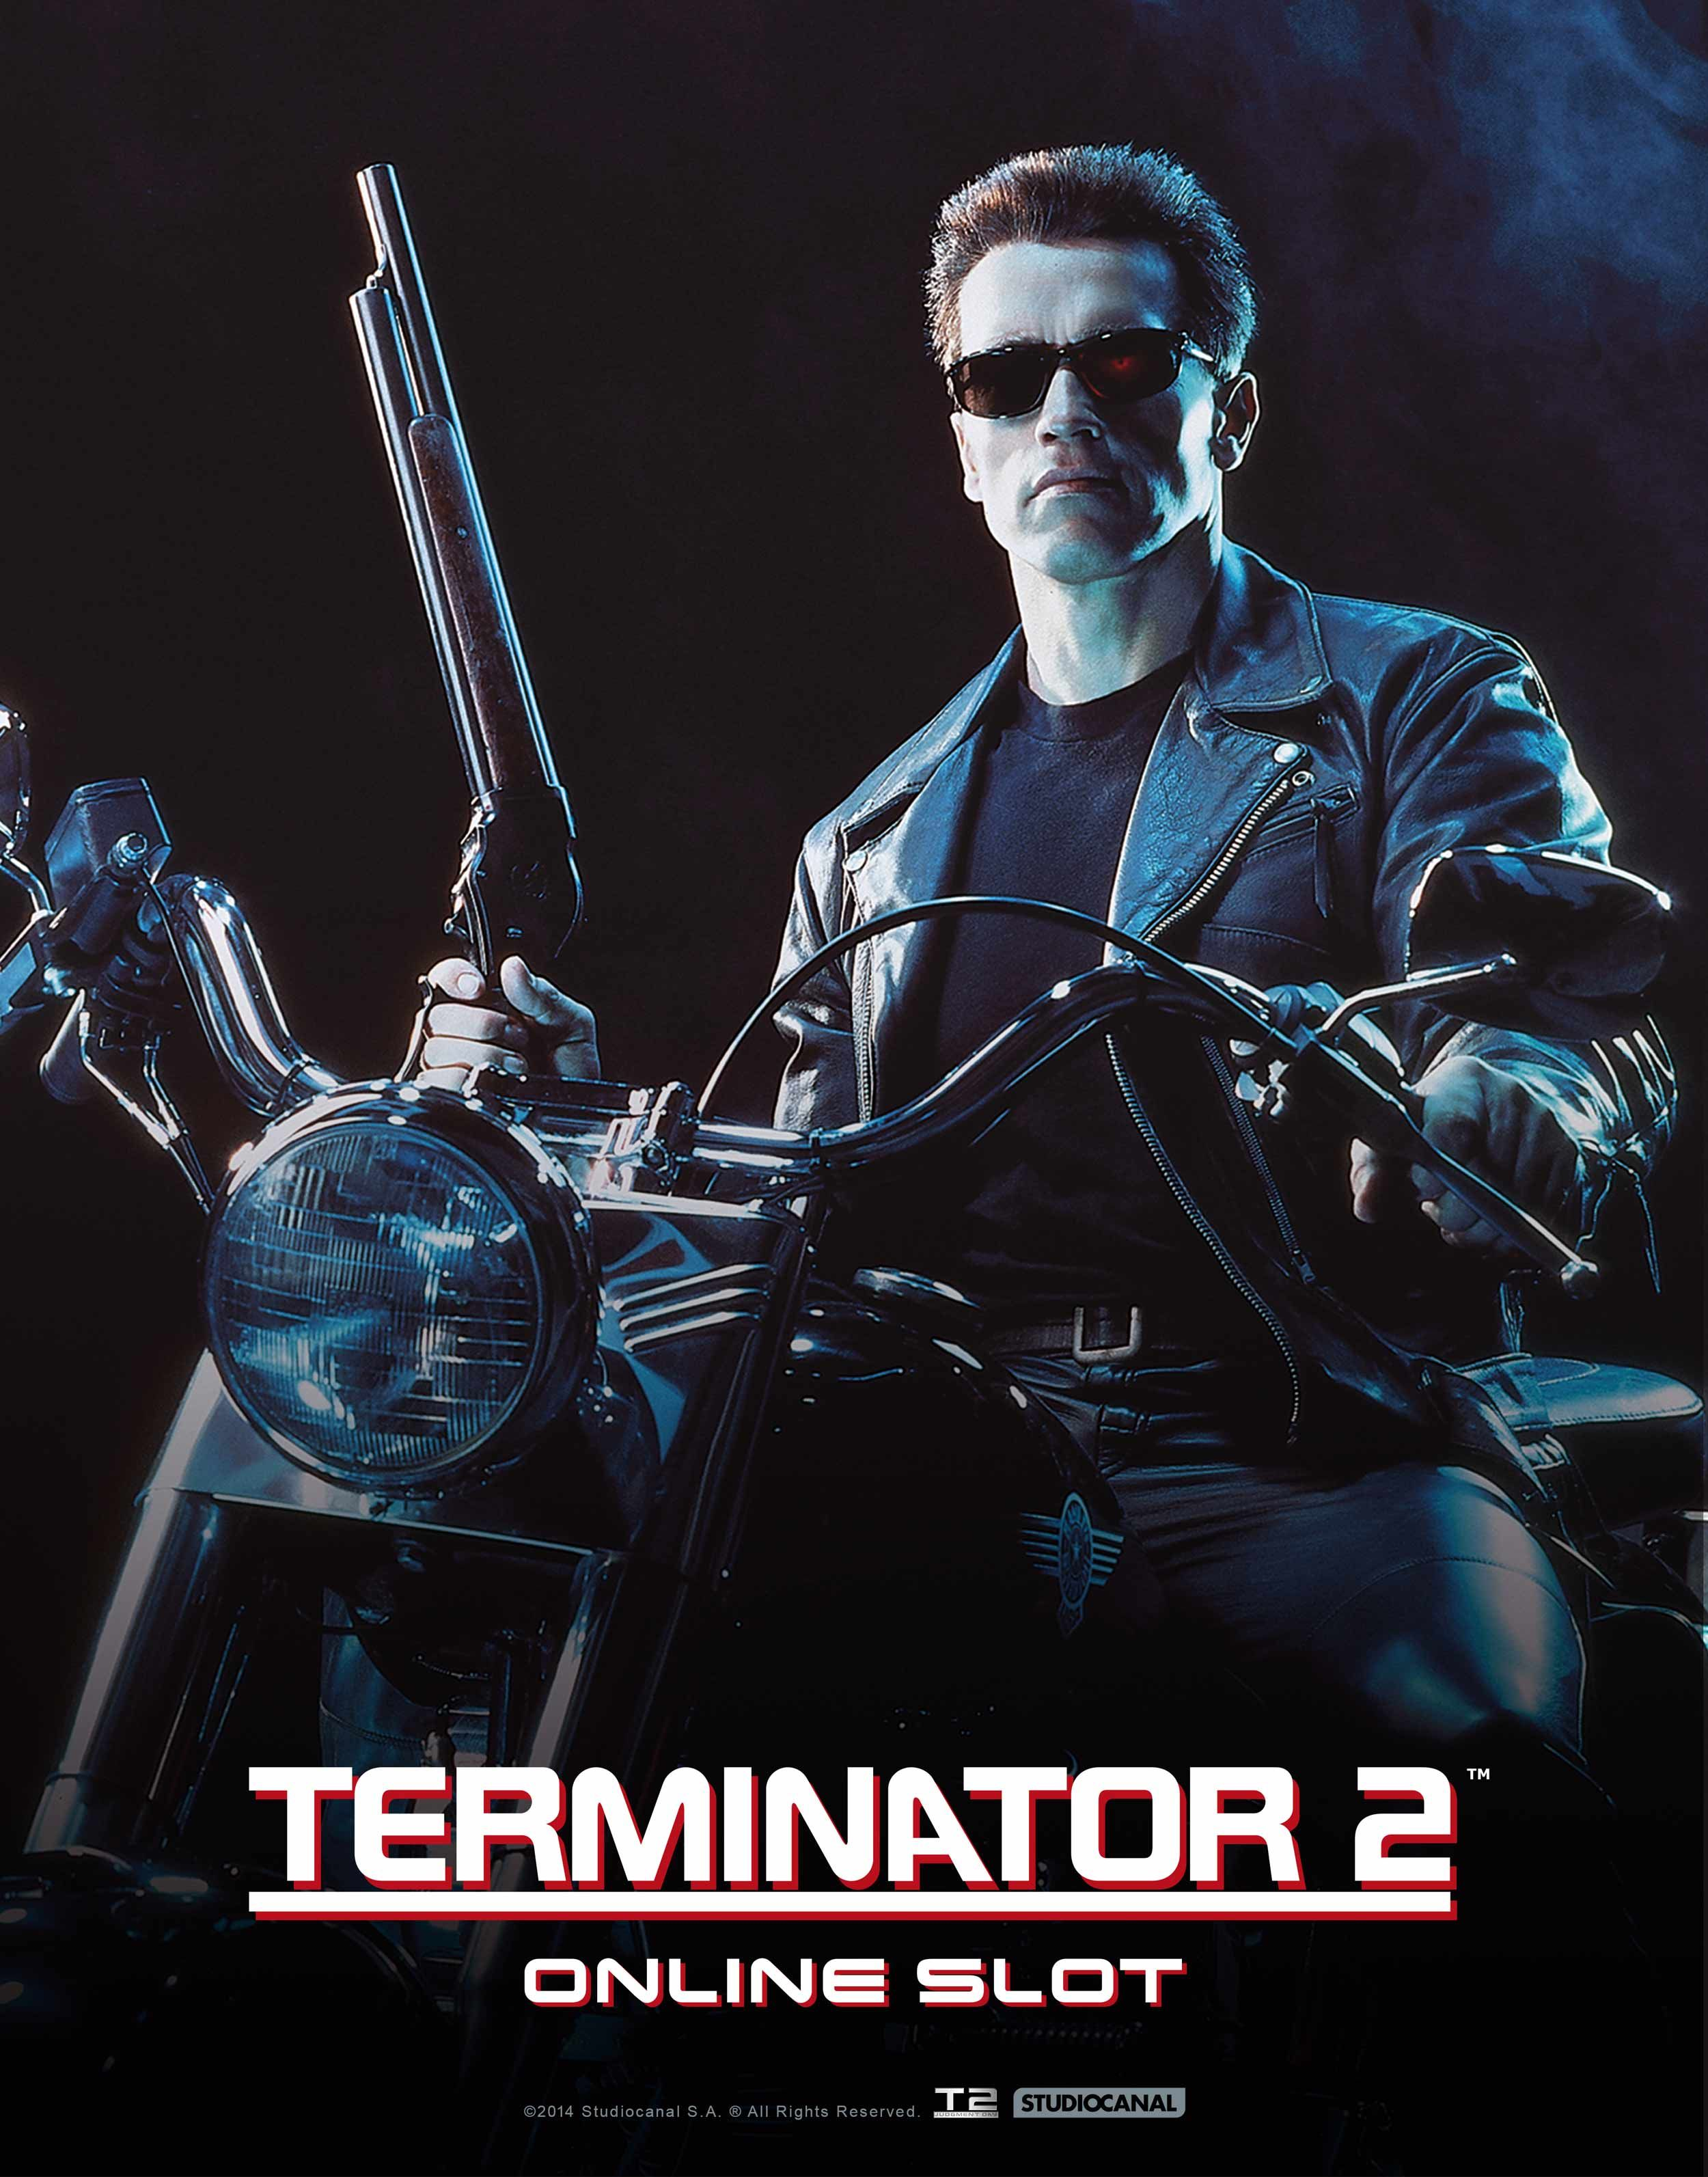 Terminator 2 Classic Movie Poster 34 in x 22 in Fast Shipping